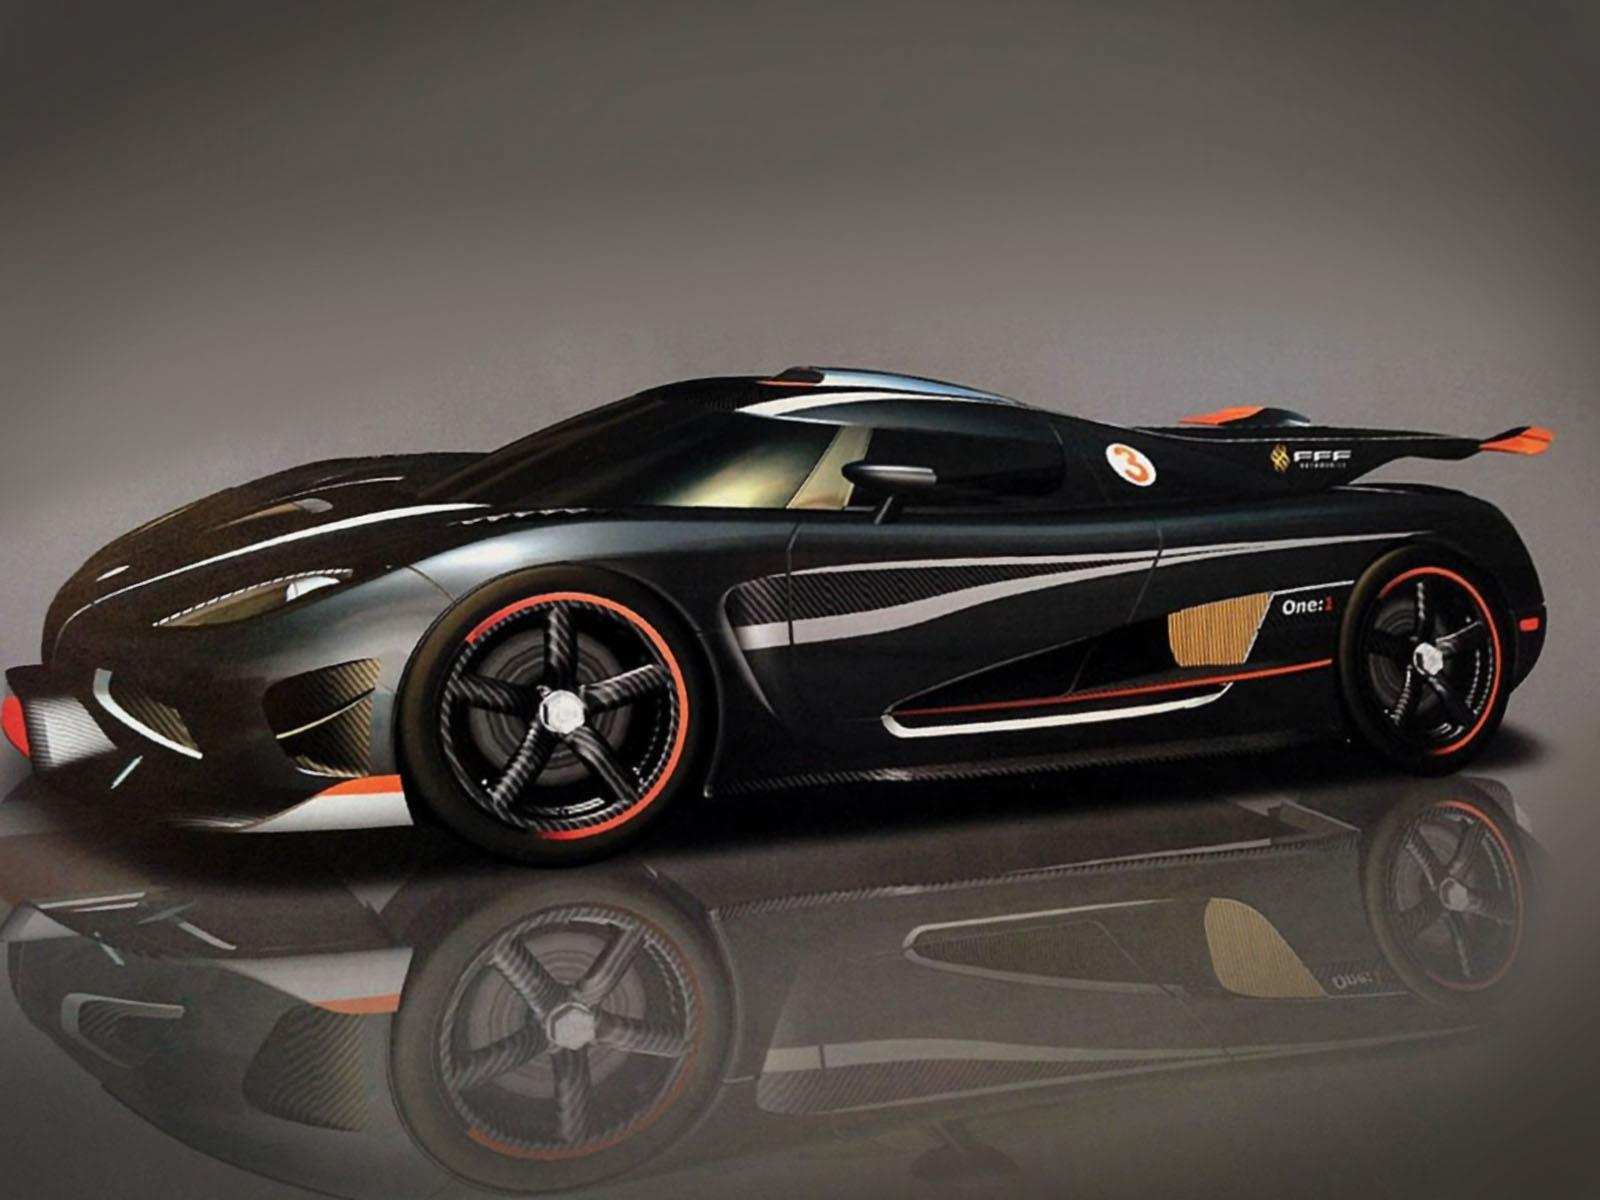 koenigsegg videos video 1 - photo #10